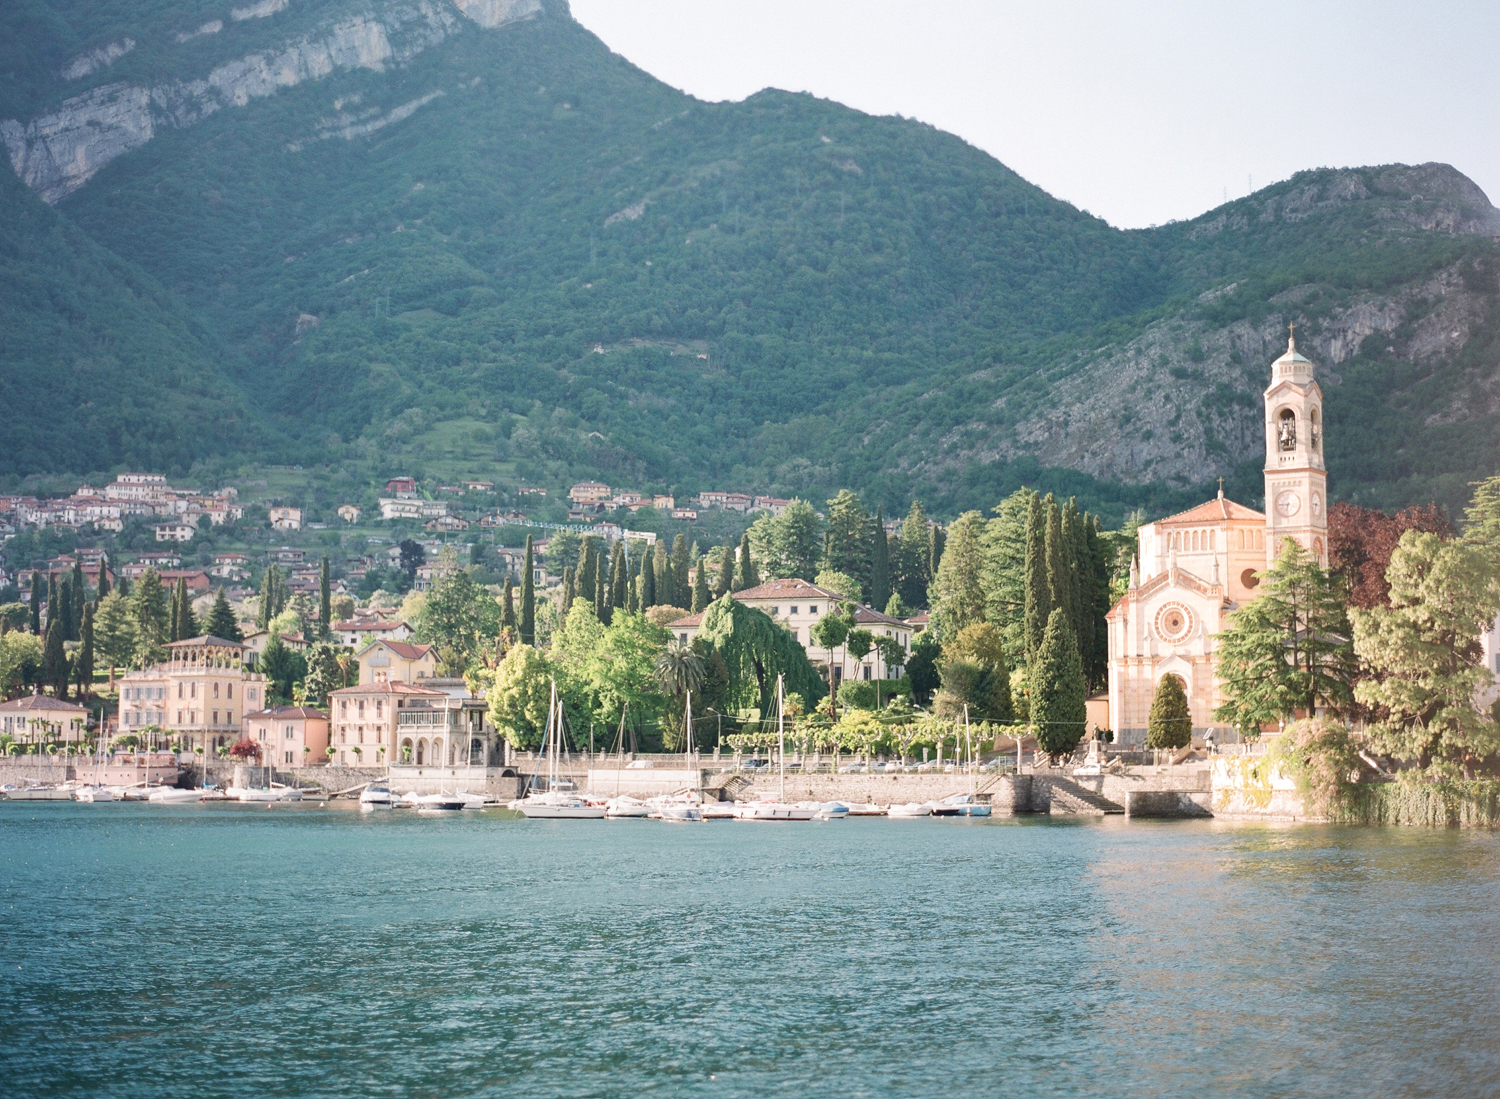 Lake_Como_wedding_photographer_nikol_bodnarova_lake_como_film_wedding_photographer_02.JPG